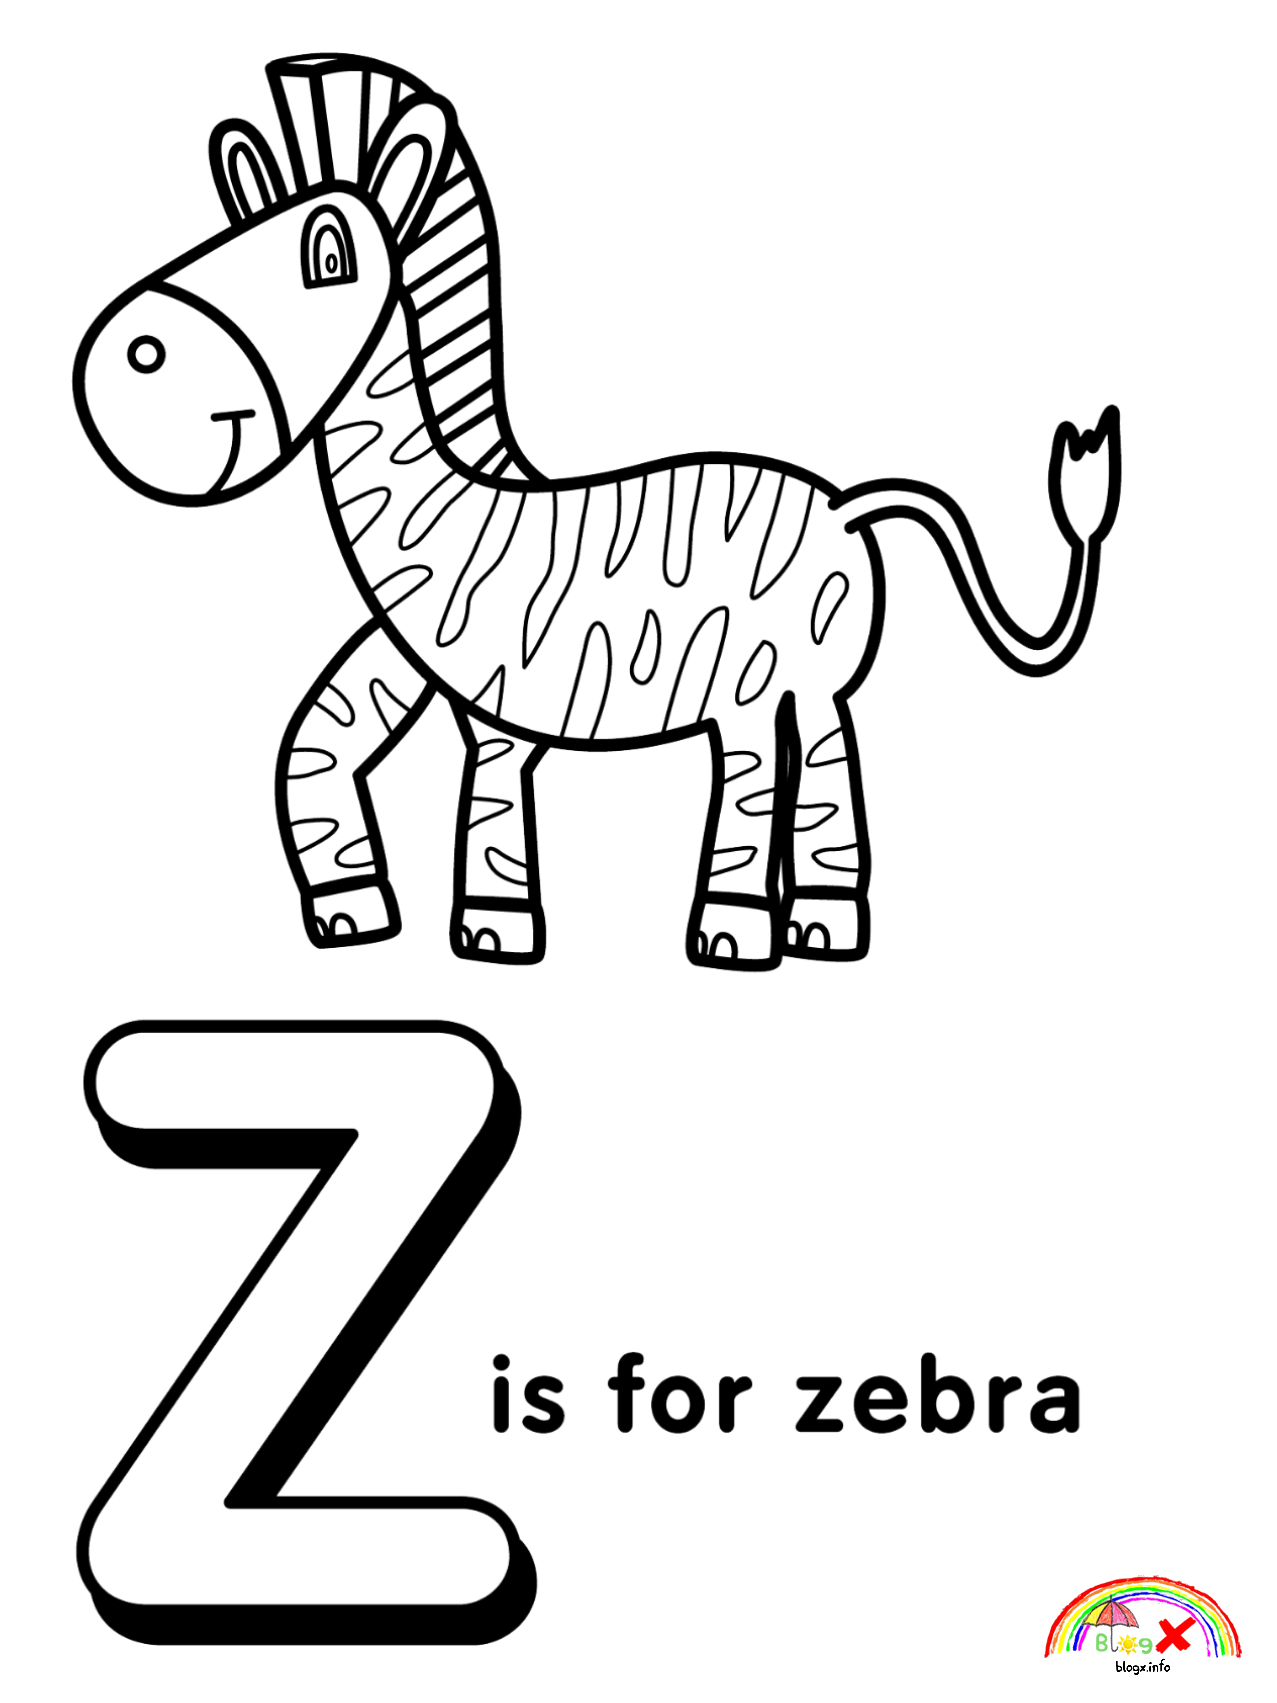 Printable Alphabet Letter Z Coloring Page Coloring Pages Allow Kids To Accompany Their Alphabet Coloring Alphabet Coloring Pages Printable Alphabet Letters